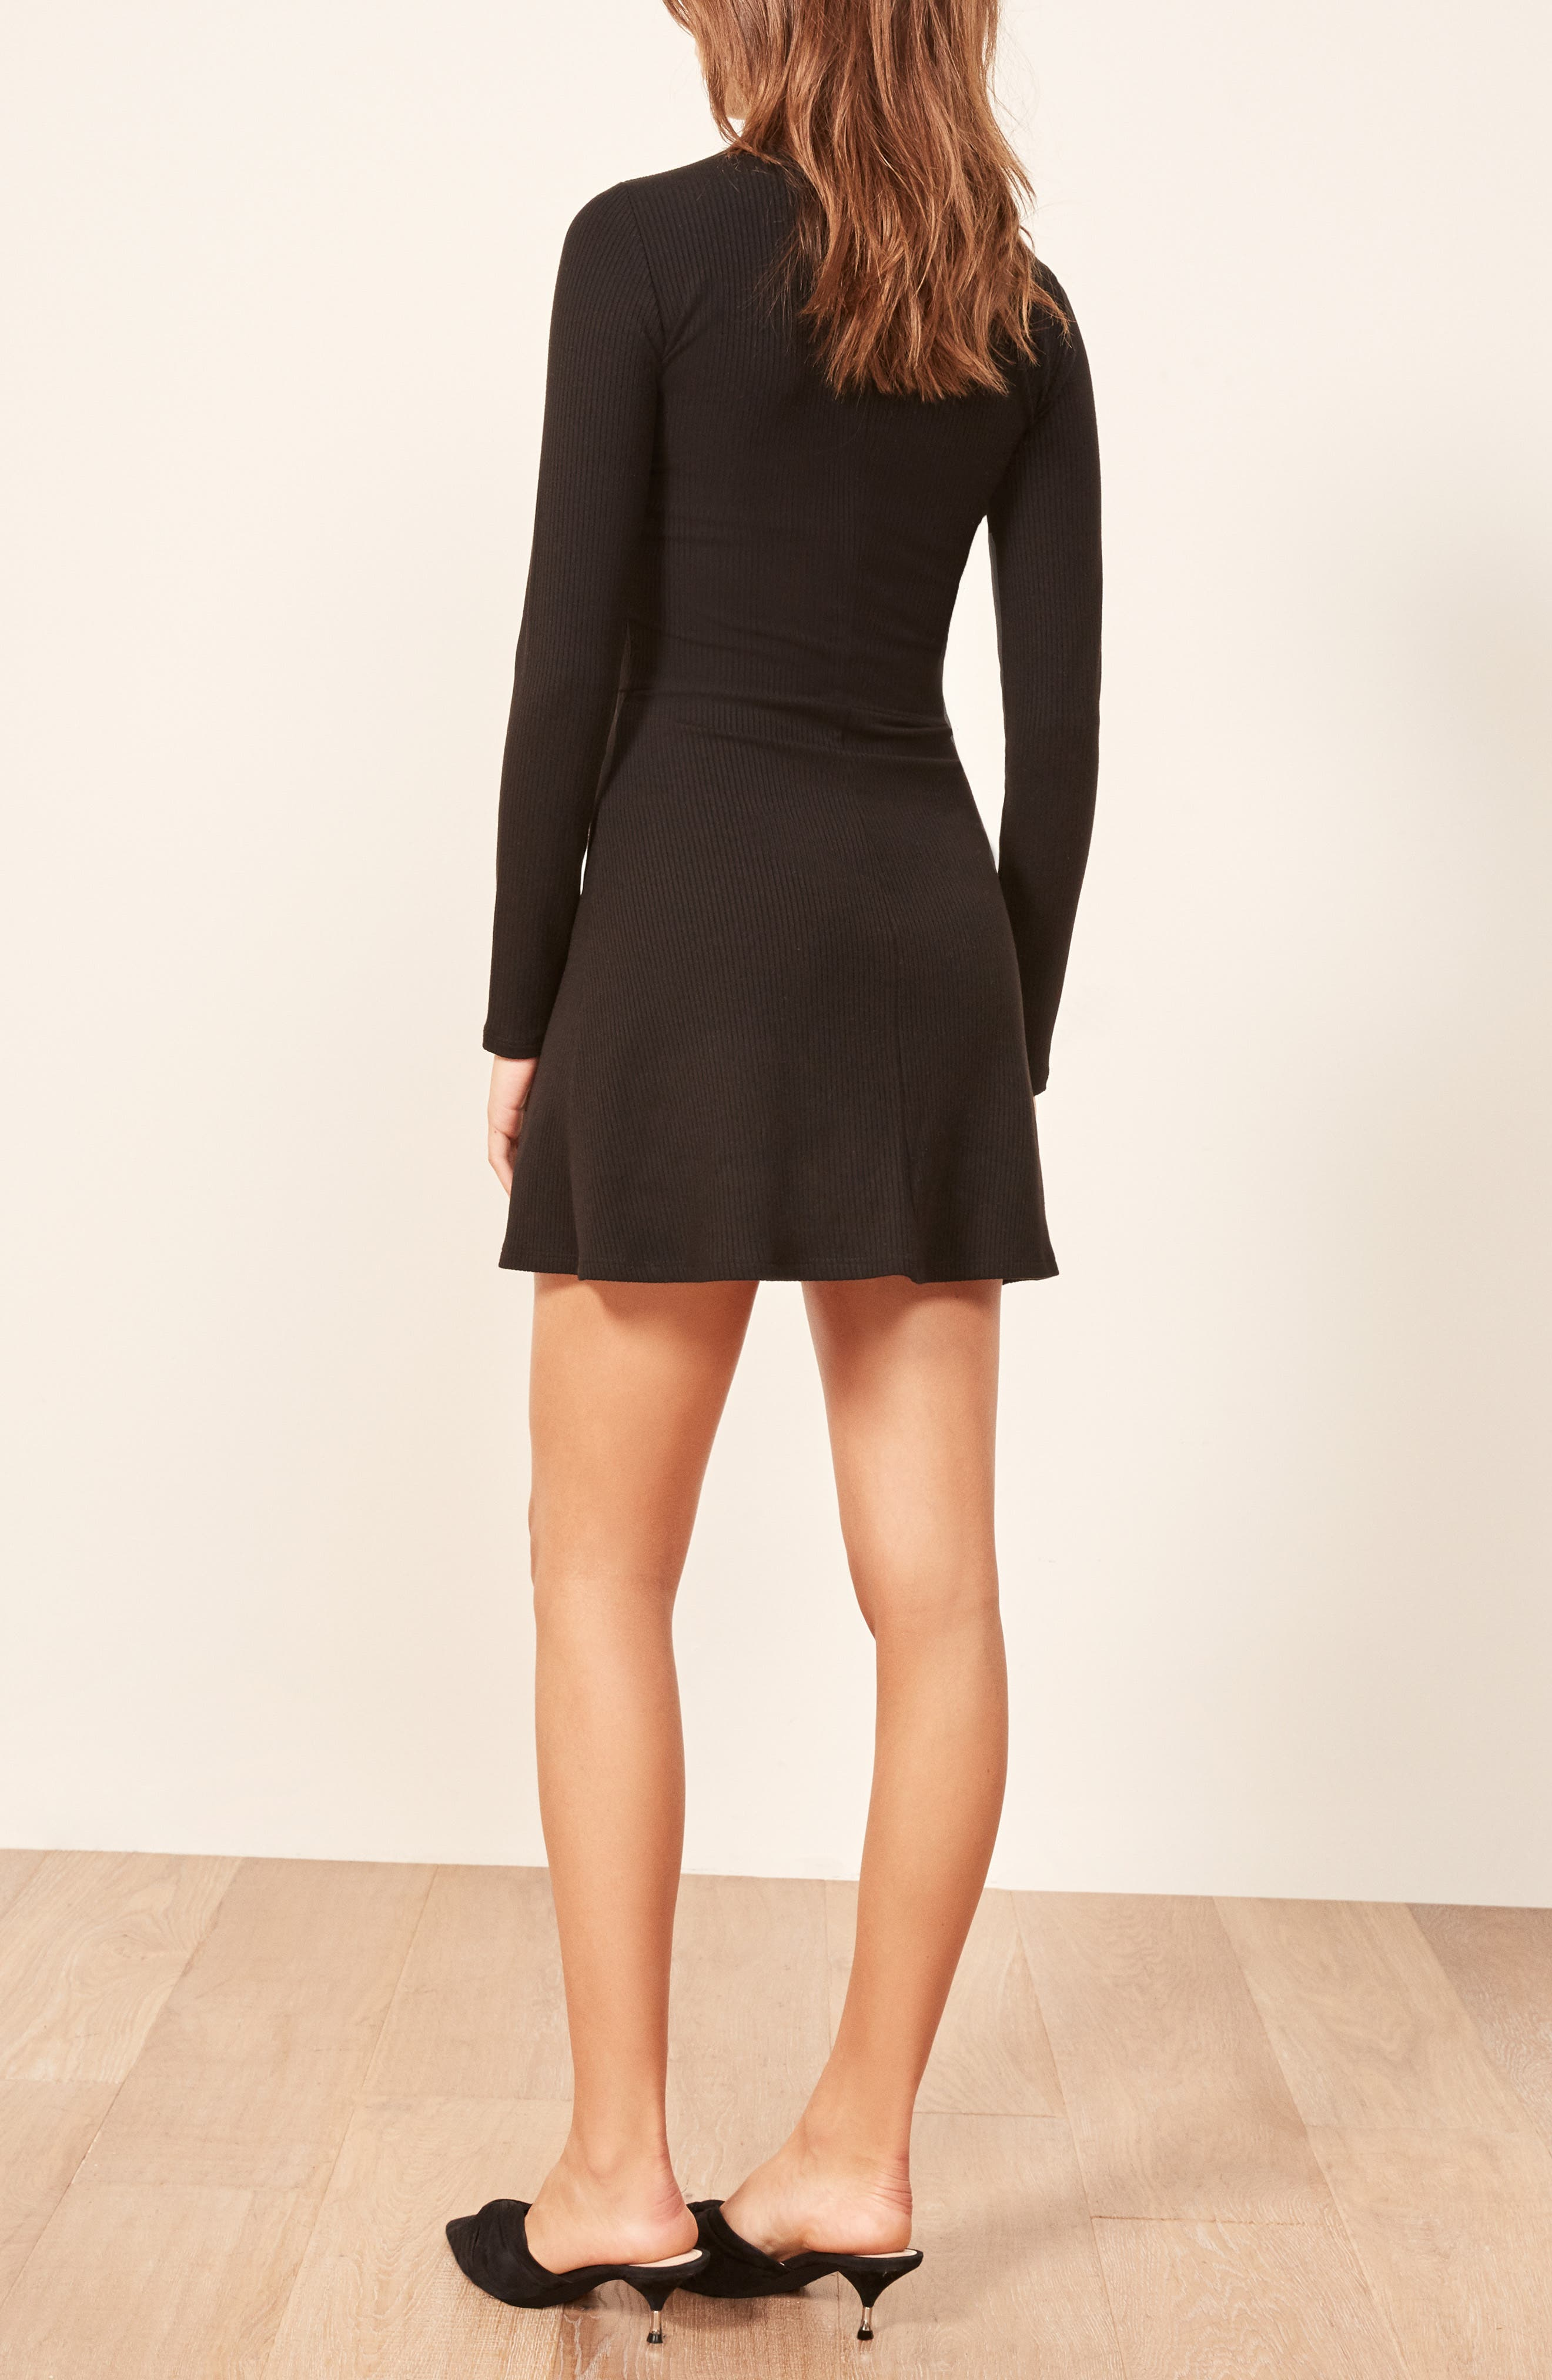 REFORMATION, Maya Turtleneck Body-Con Dress, Alternate thumbnail 4, color, BLACK